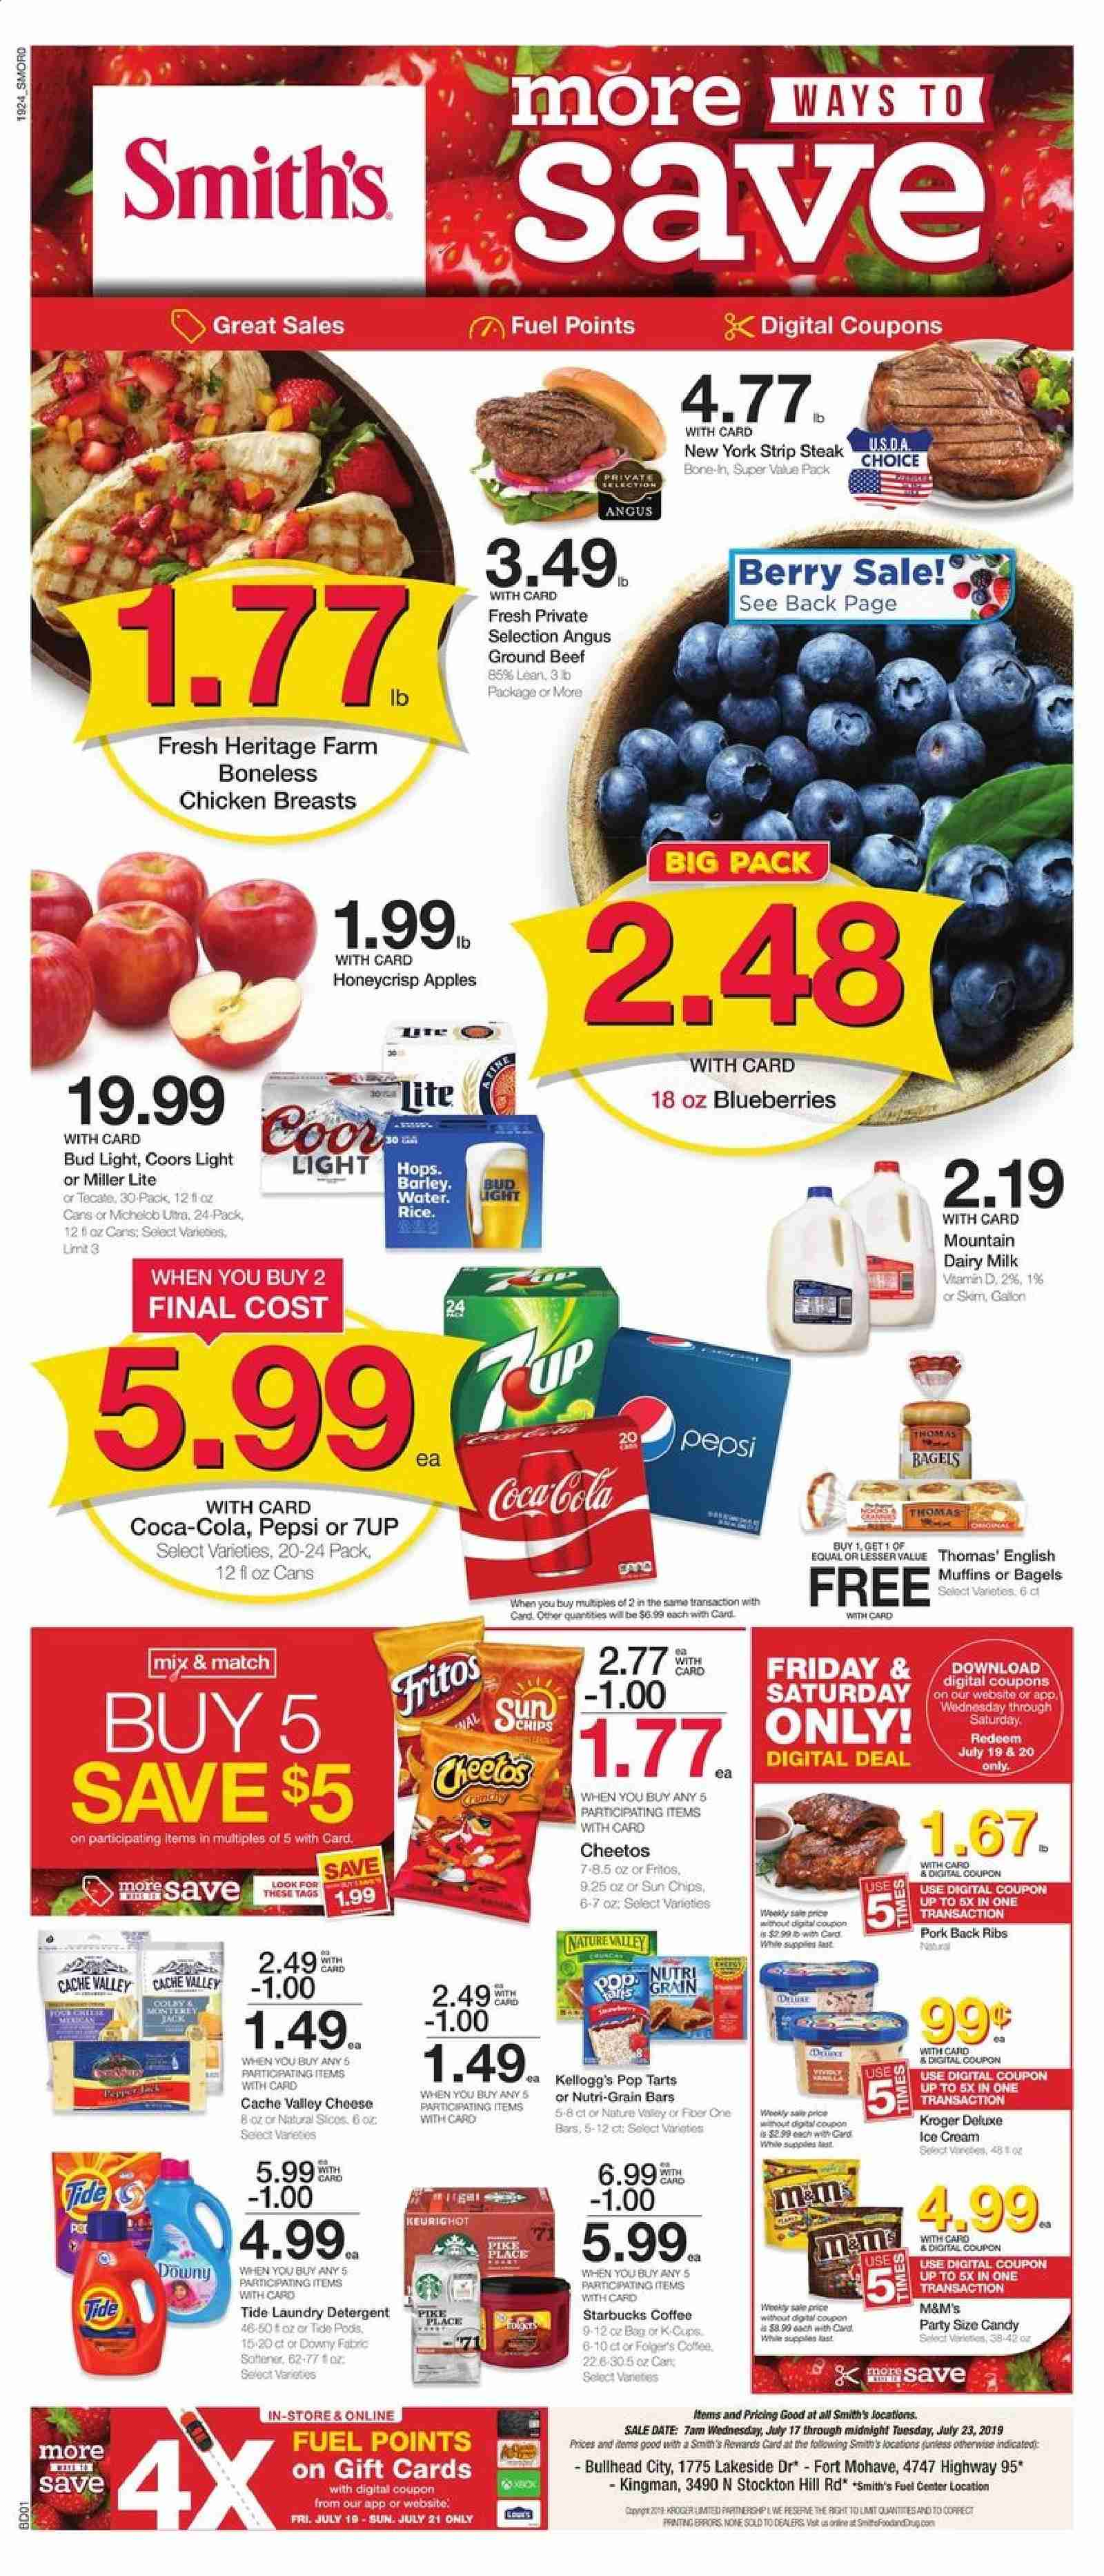 Smith's Flyer  - 07.17.2019 - 07.23.2019. Page 1.